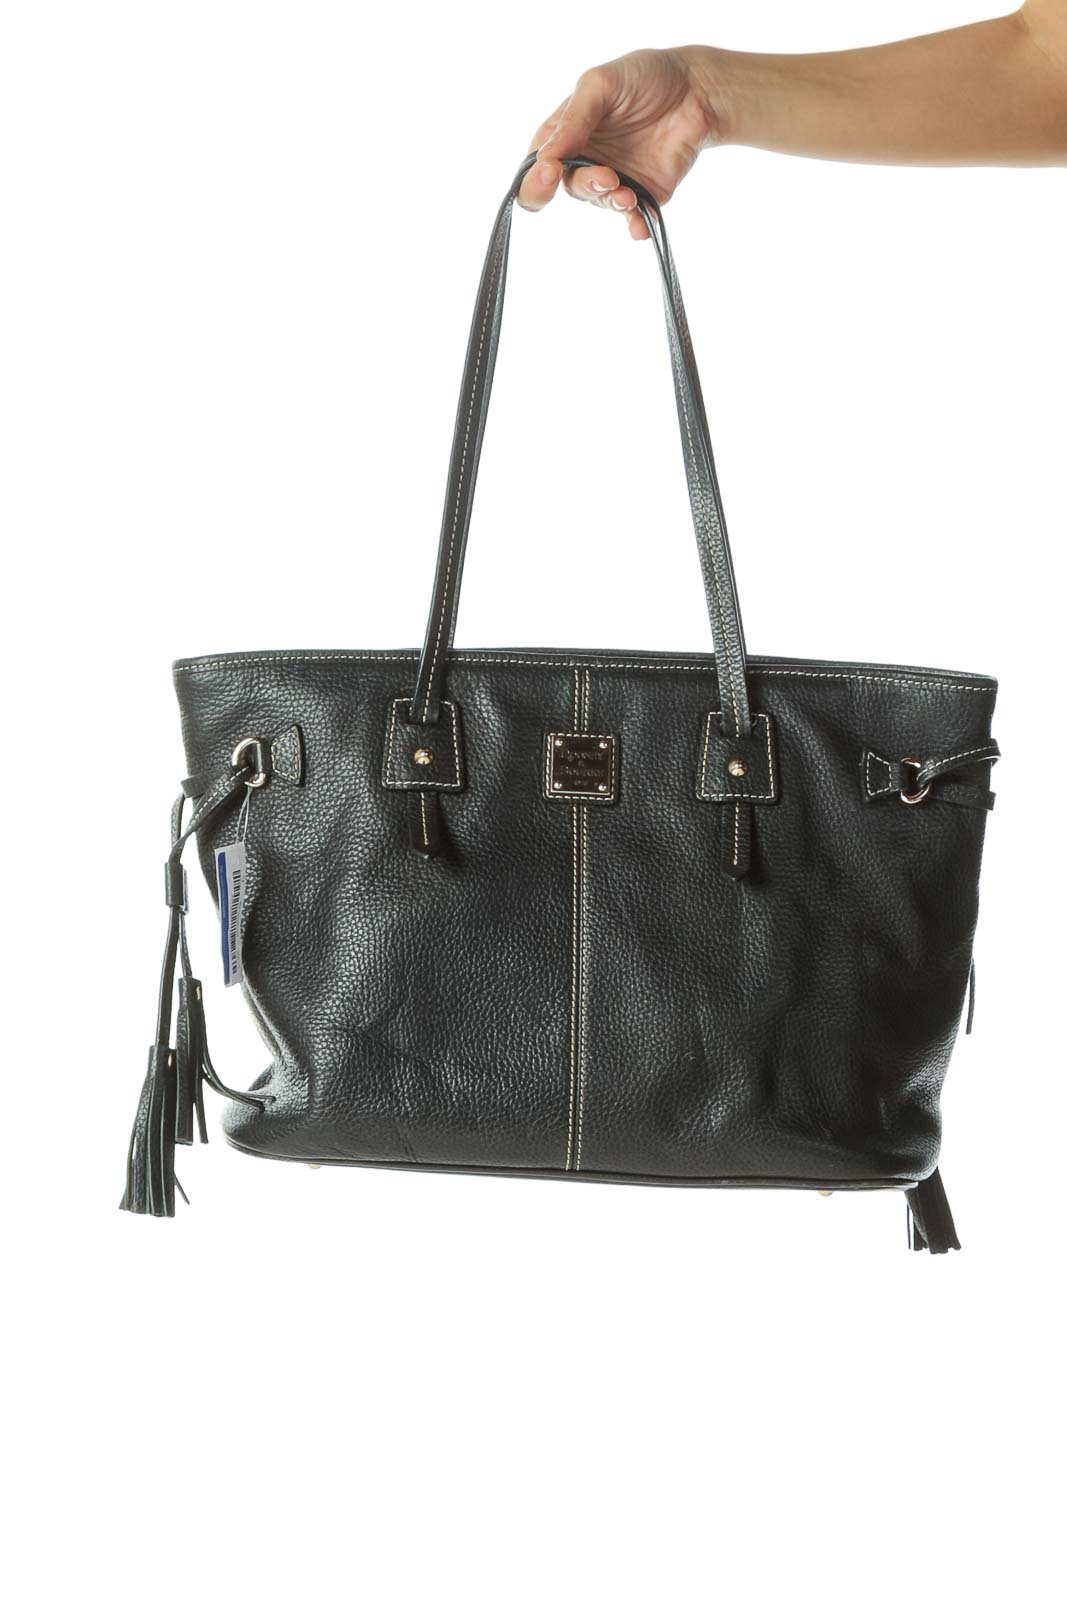 Black Gold Hardware Stitched Tote with Tassels